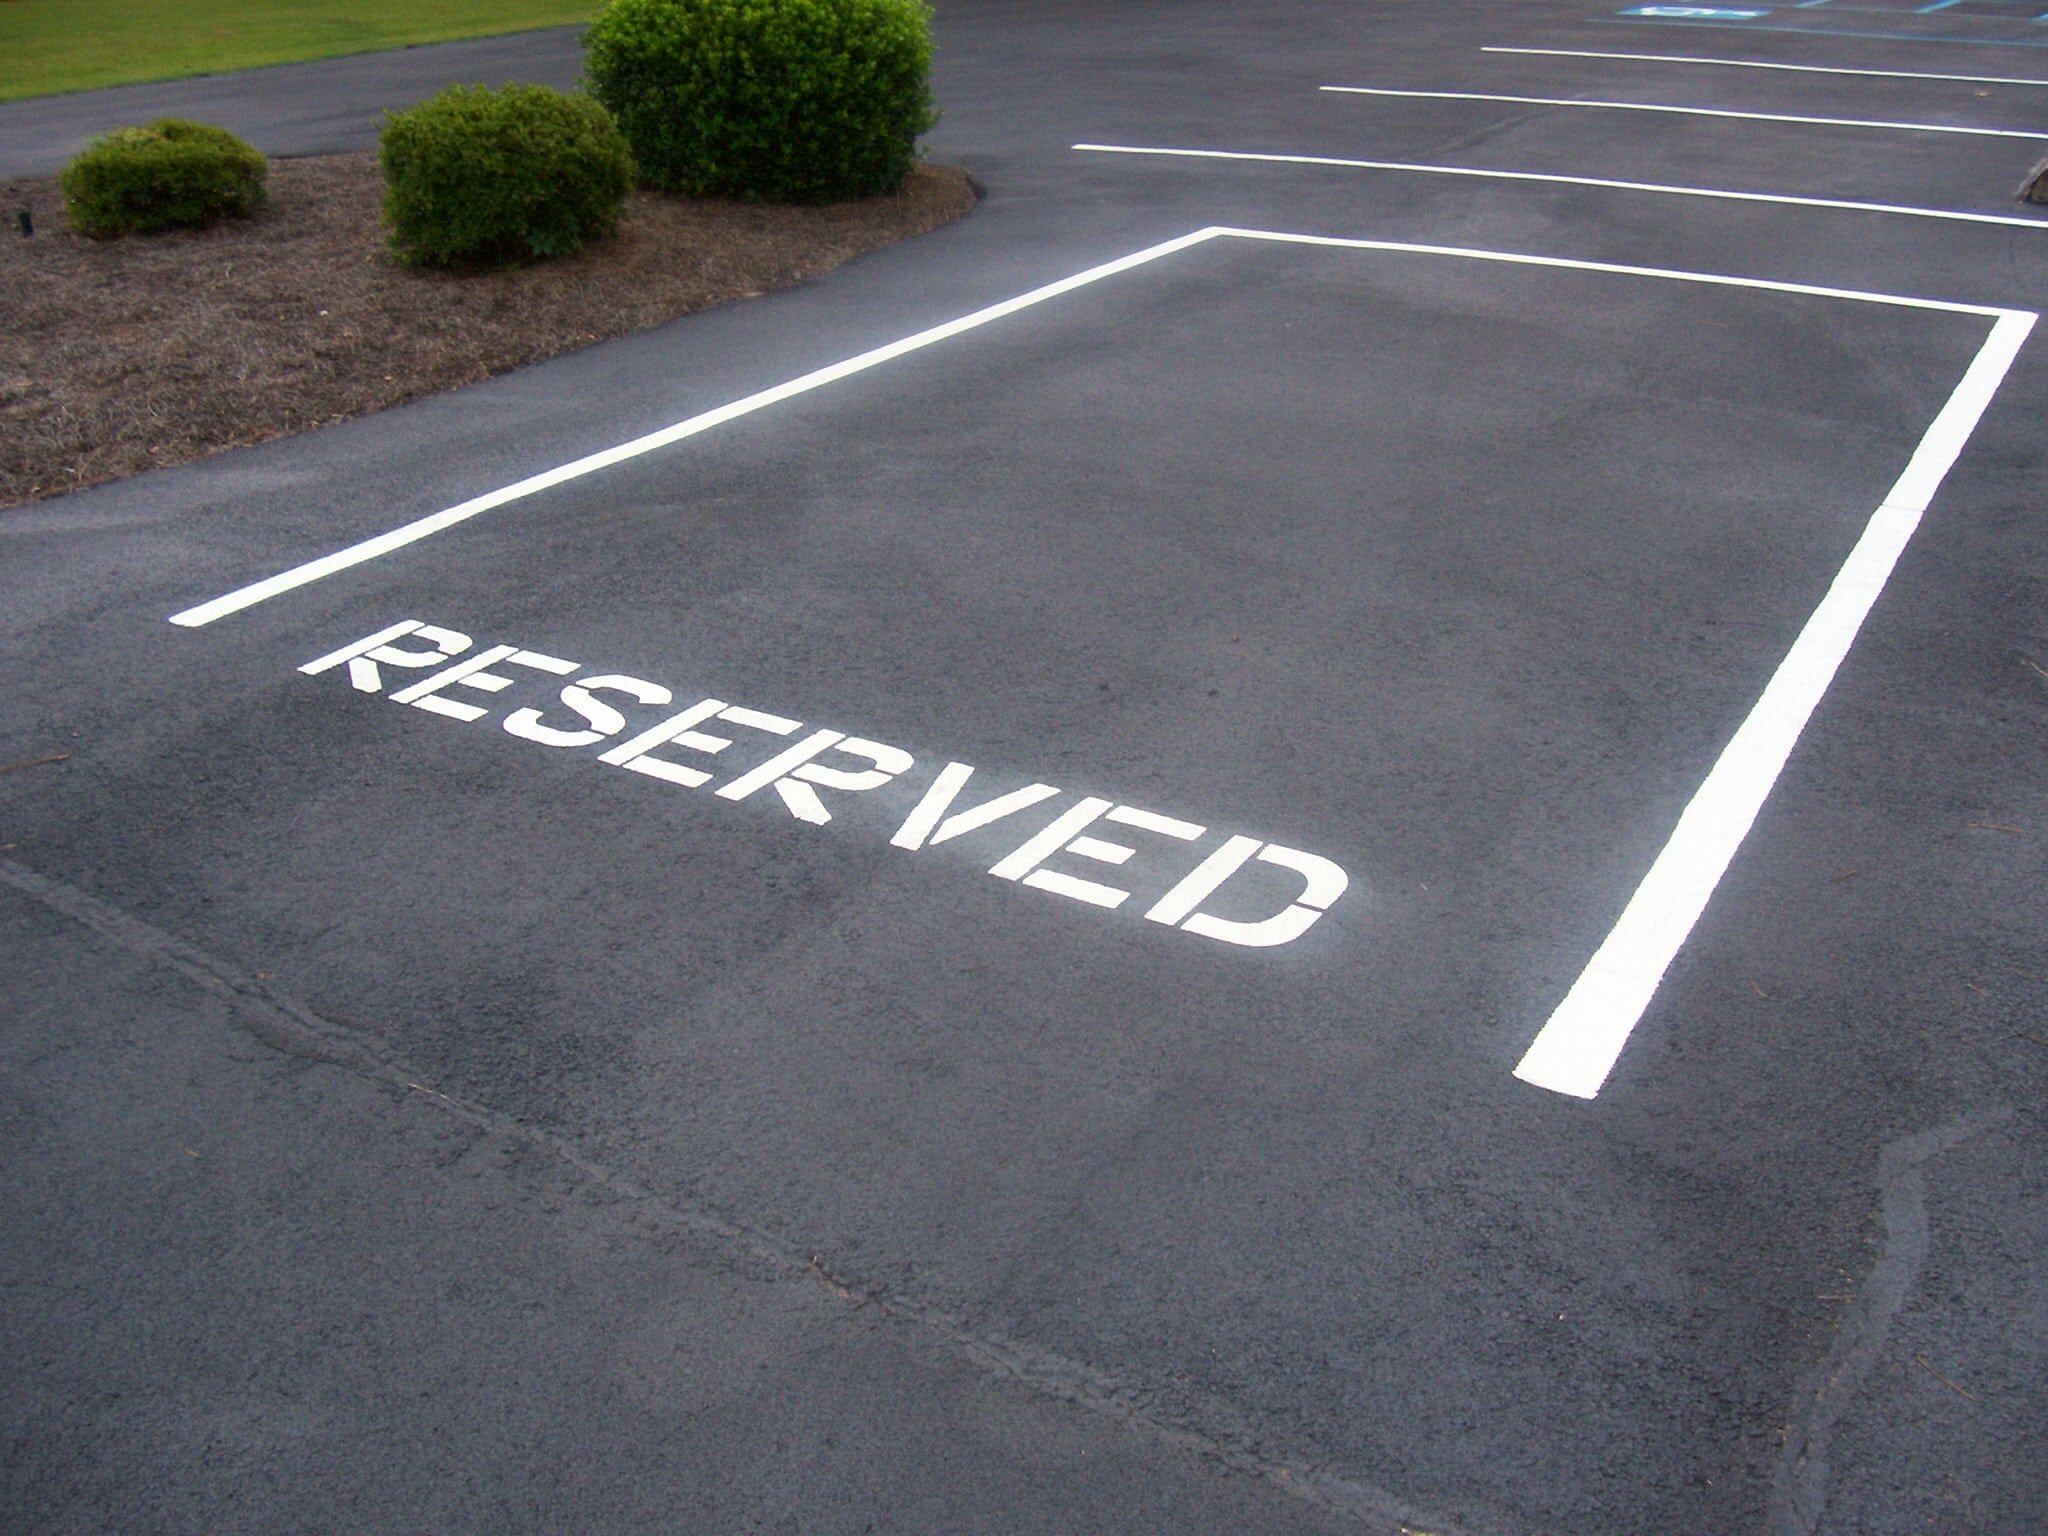 Reserve a spot to park your car properly bat the airport with reserve a spot to park your car properly bat the airport with professional assistance kristyandbryce Choice Image